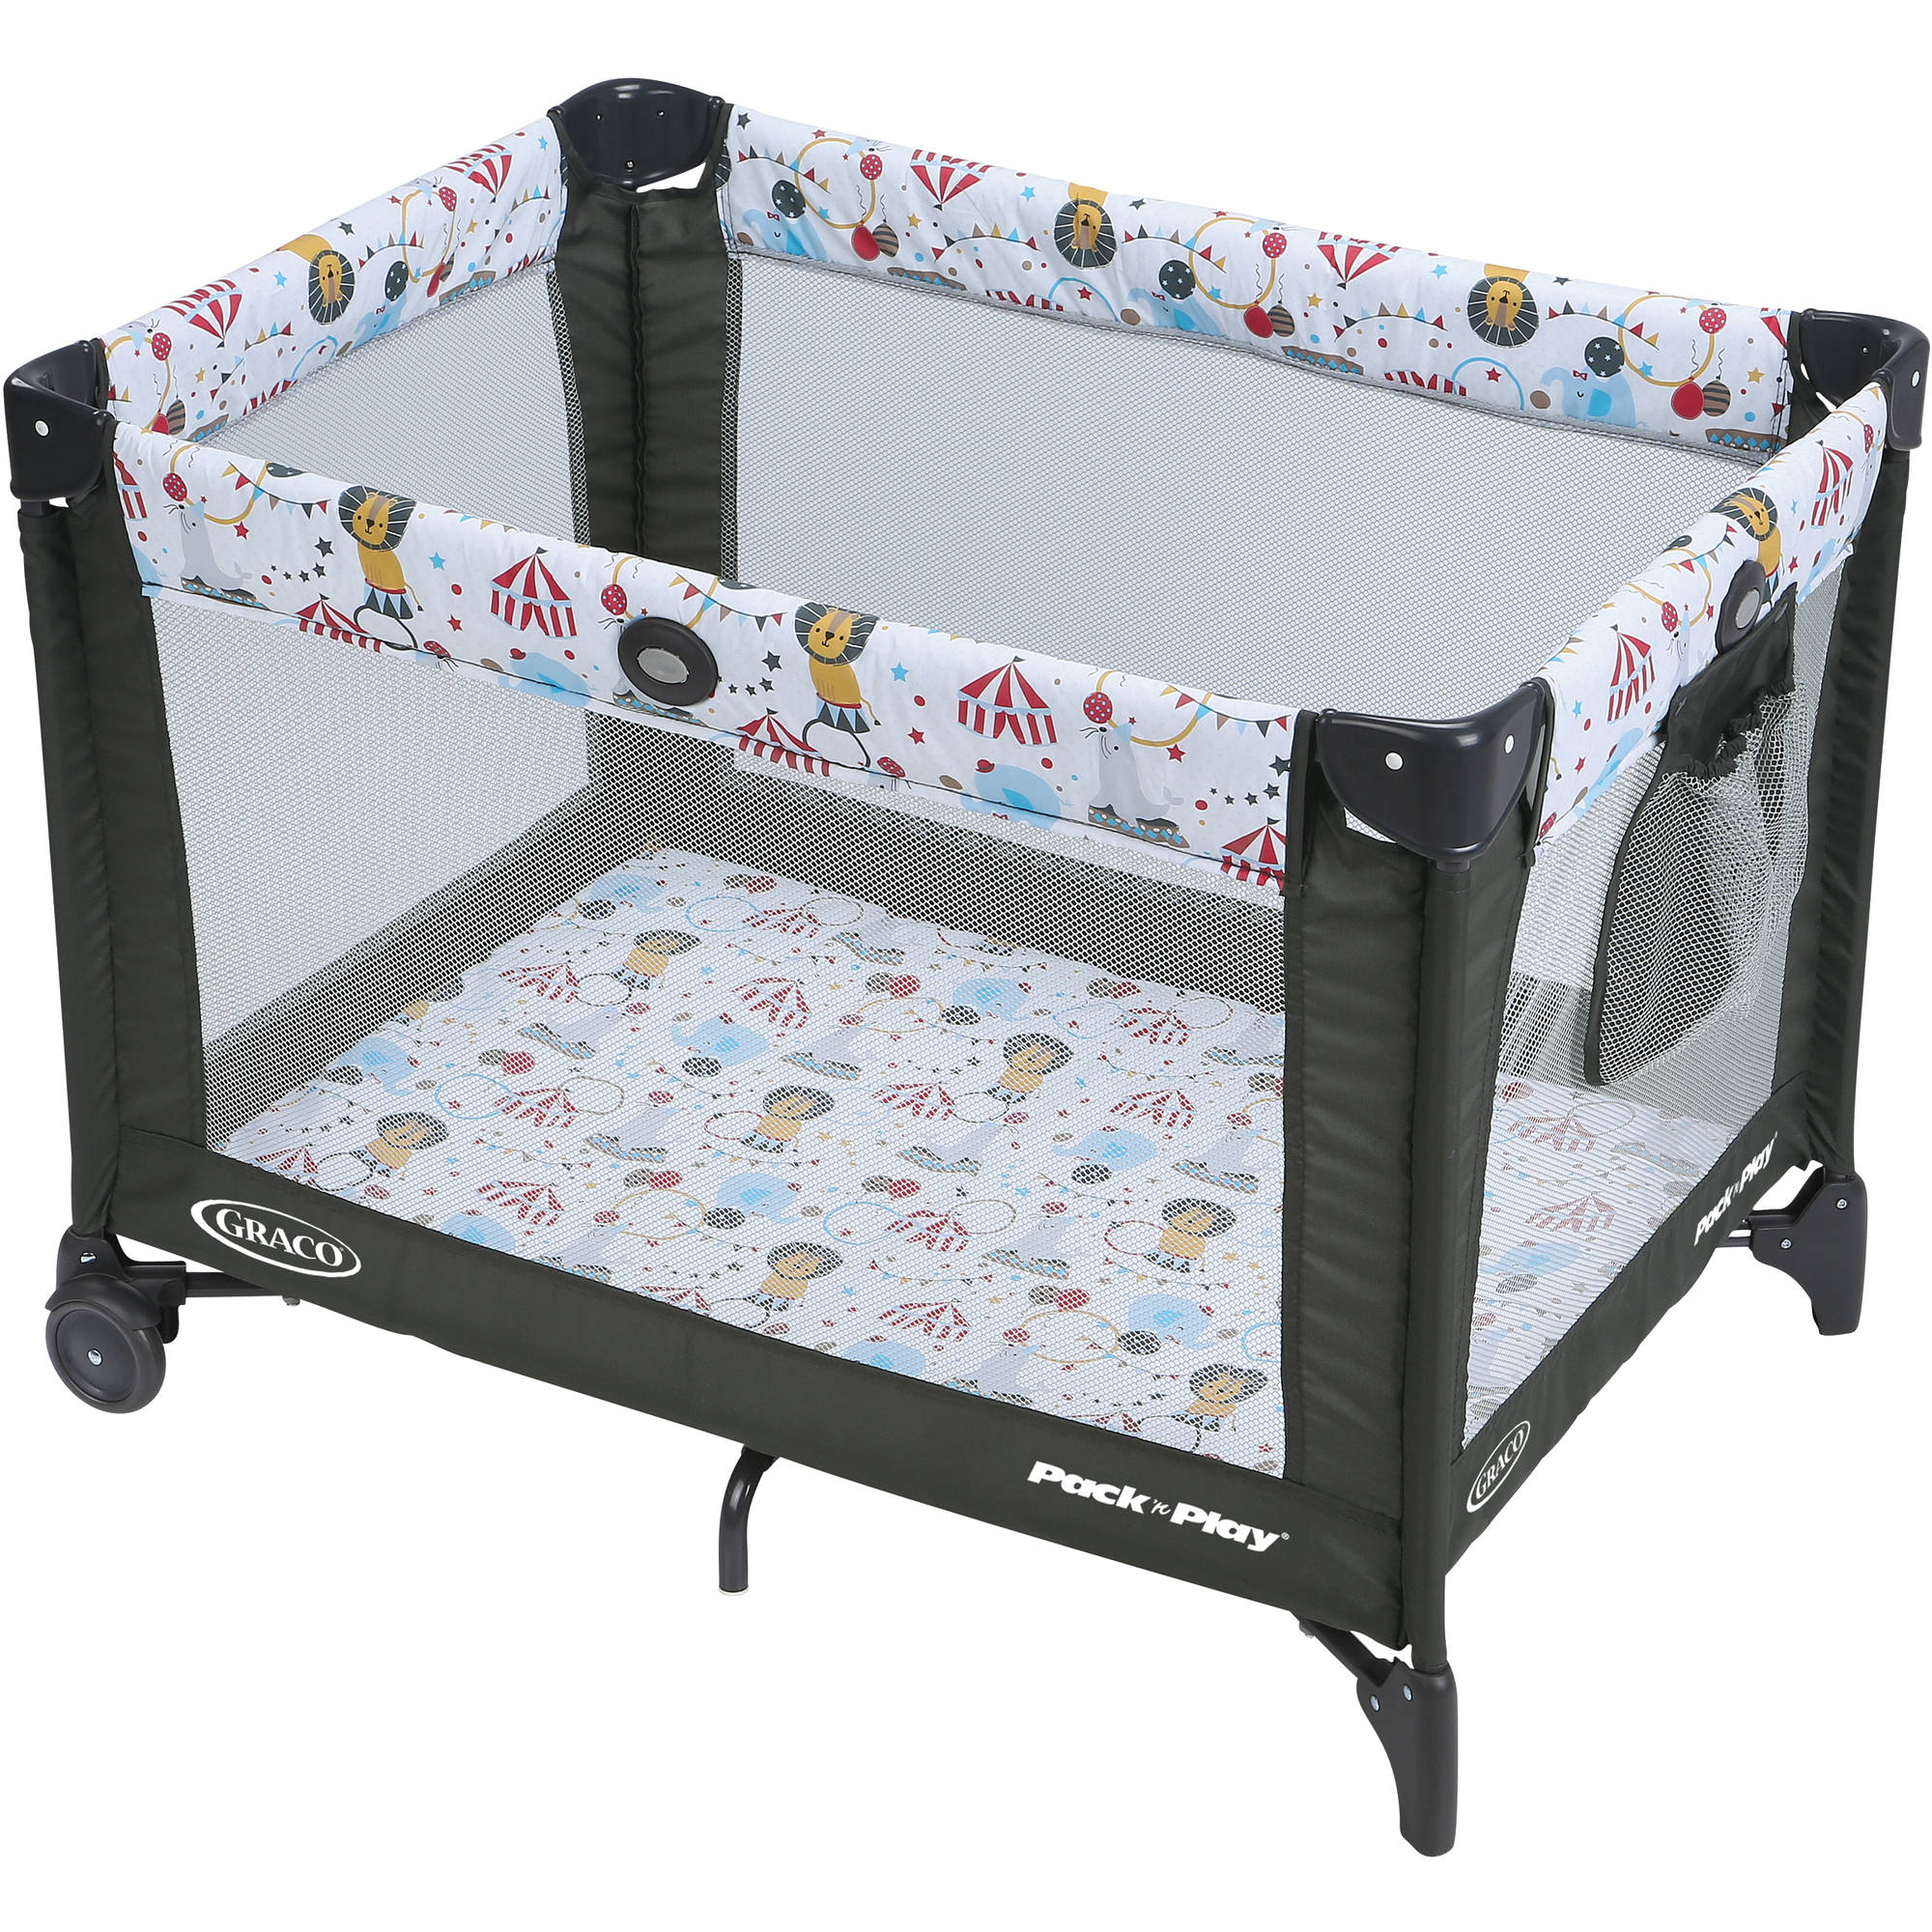 playard crib version lotus product travel adriane b baby best portable parent reviews cribs and